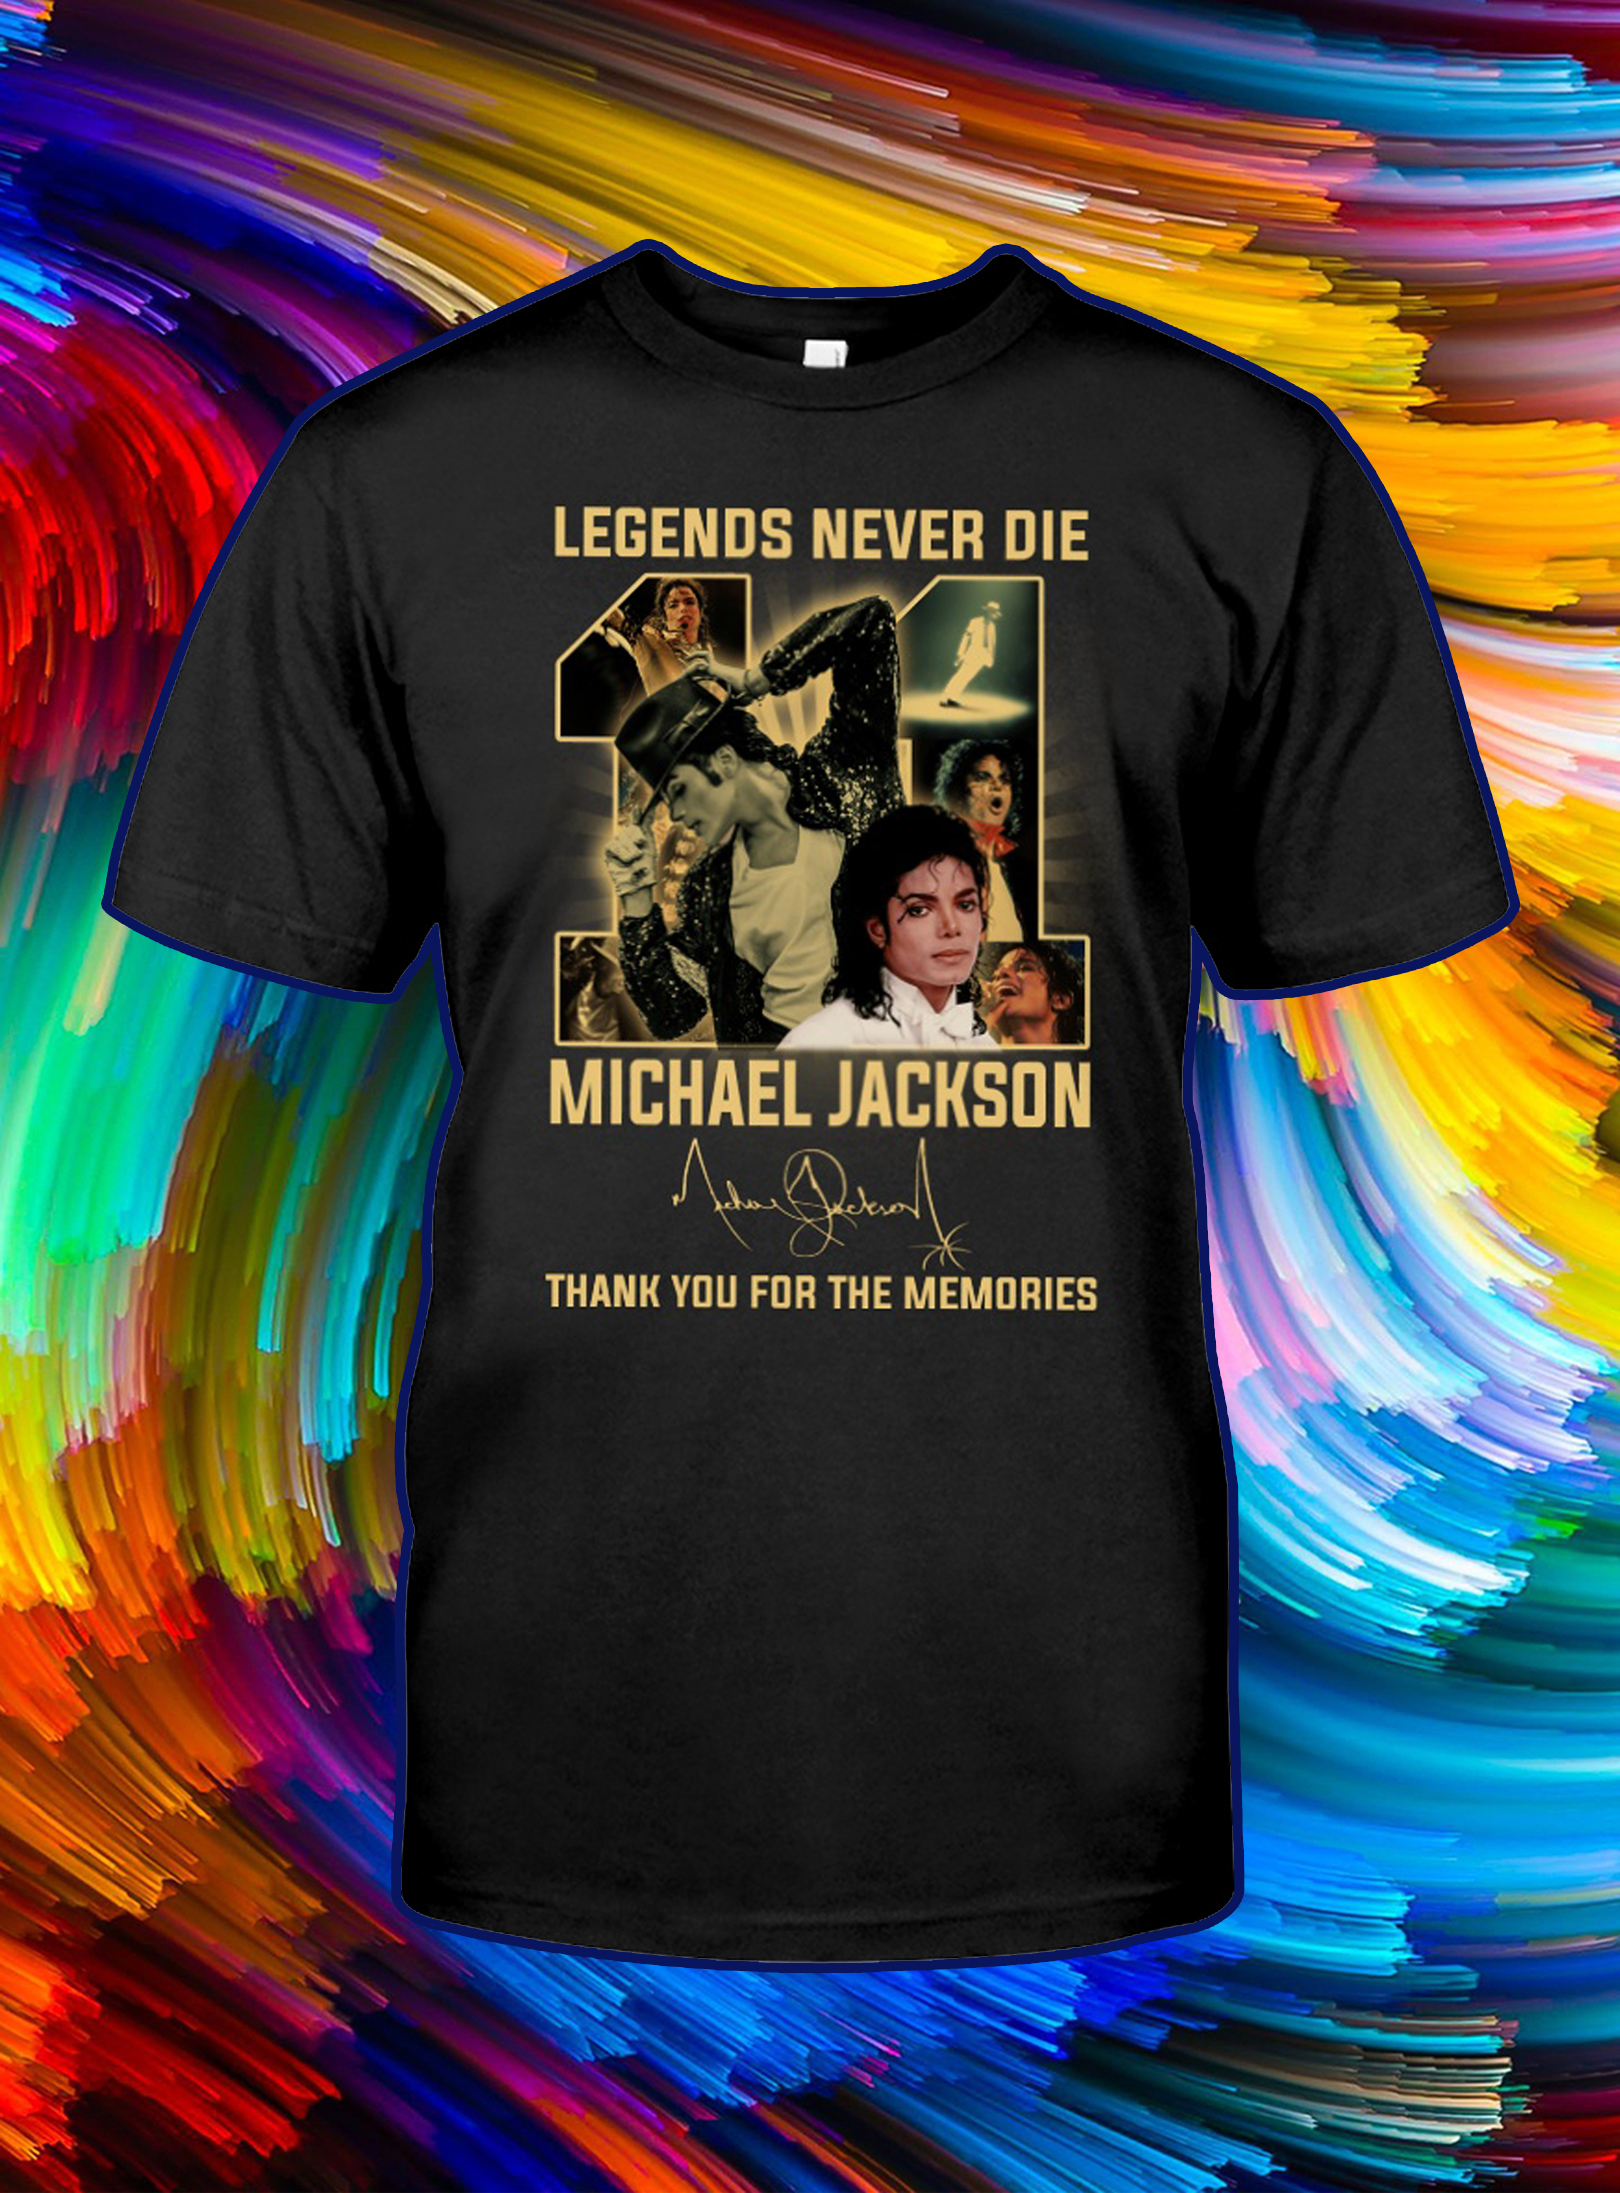 Legends never die michael jackson thank you for the memories shirt